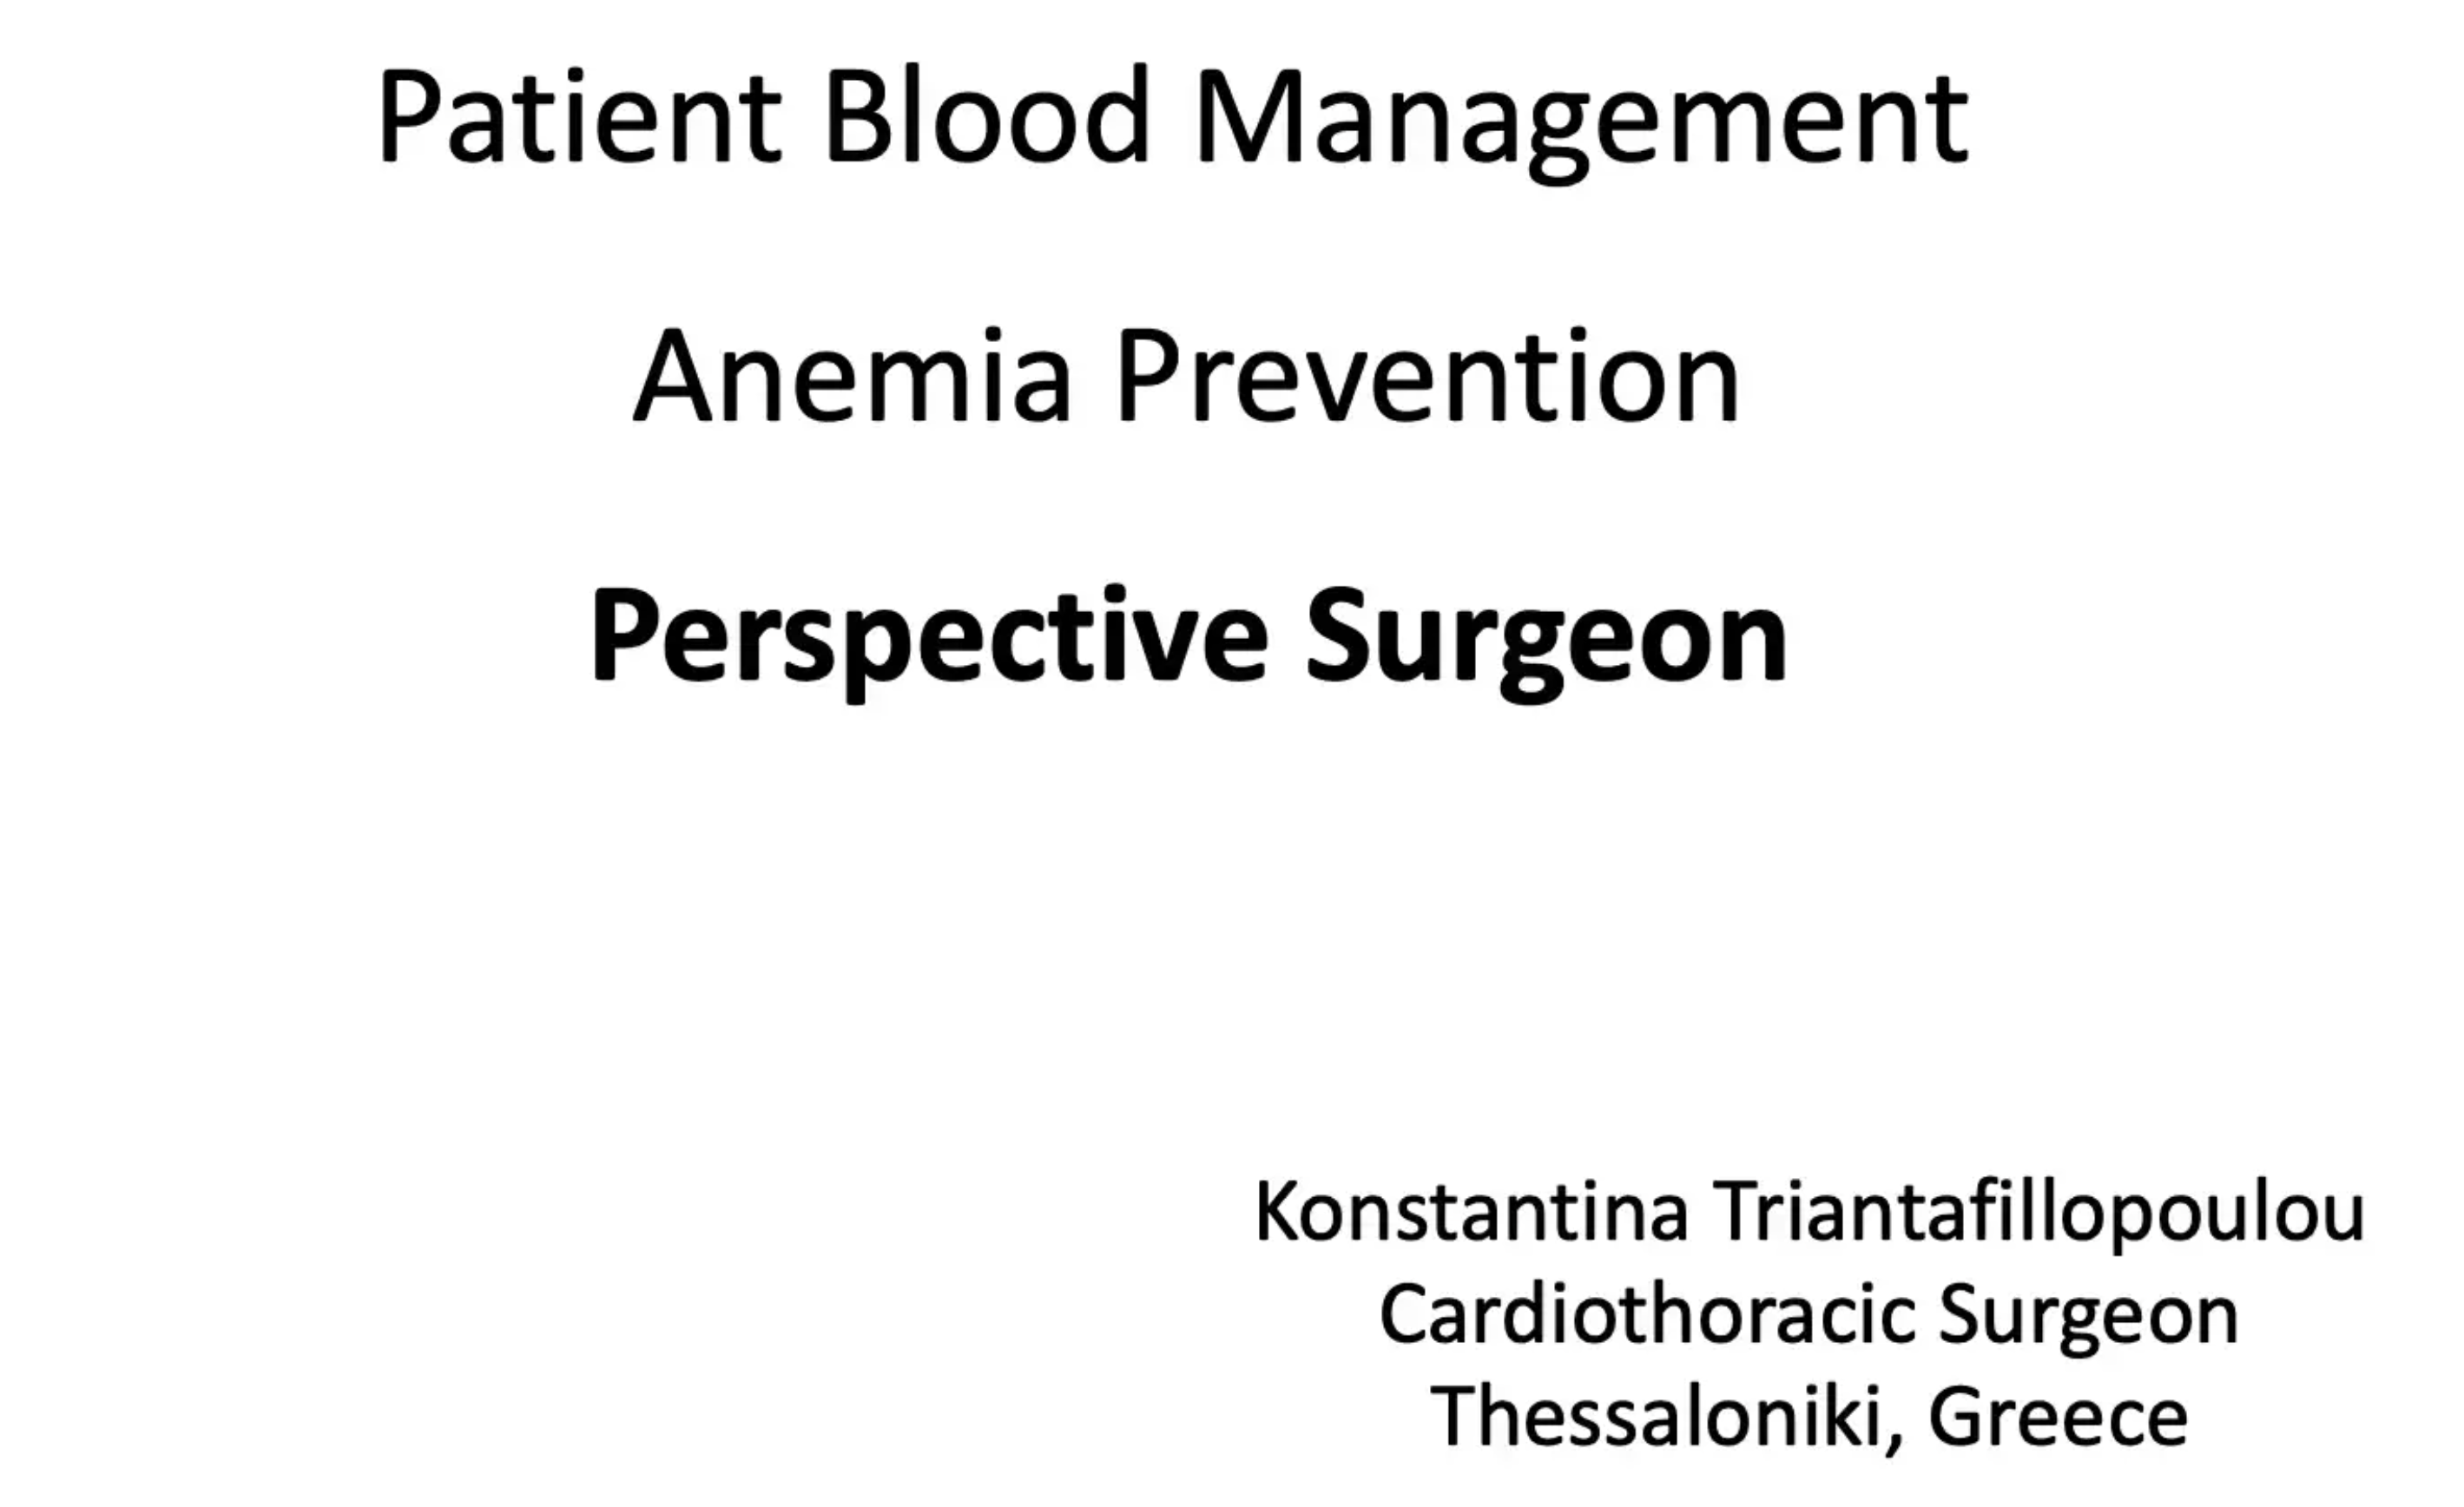 Tina Triantafyllopulou - PBM - Anemia Prevention – Perspective Surgeon